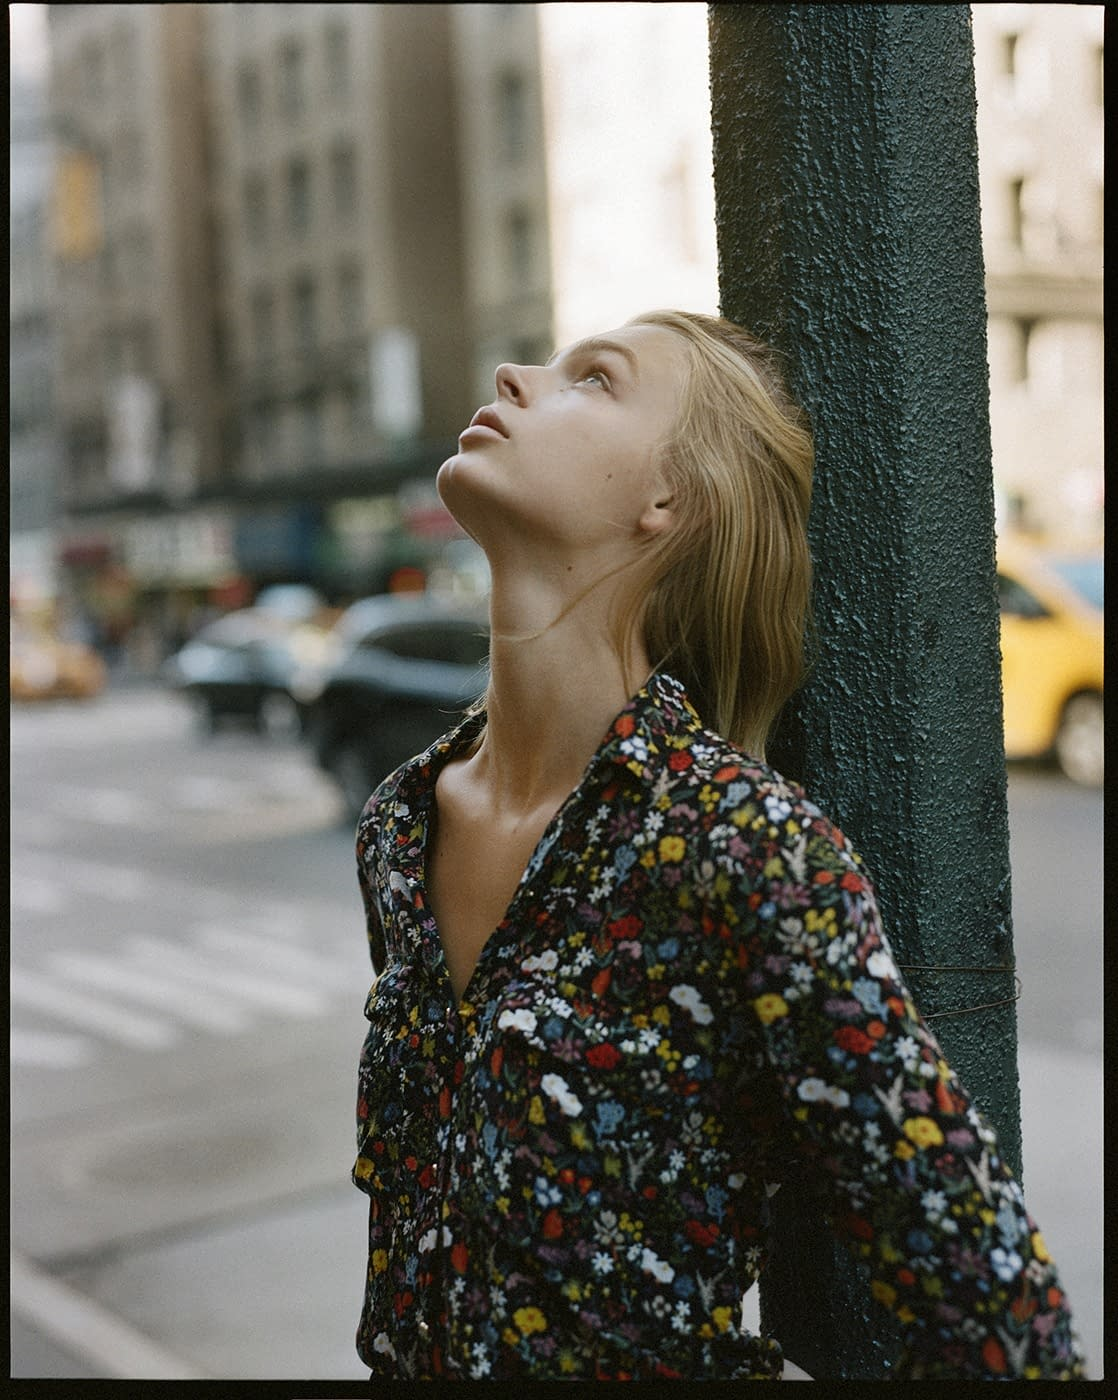 KYLIE NEW YORK BY ENRIC GALCERAN - PHOTO 18